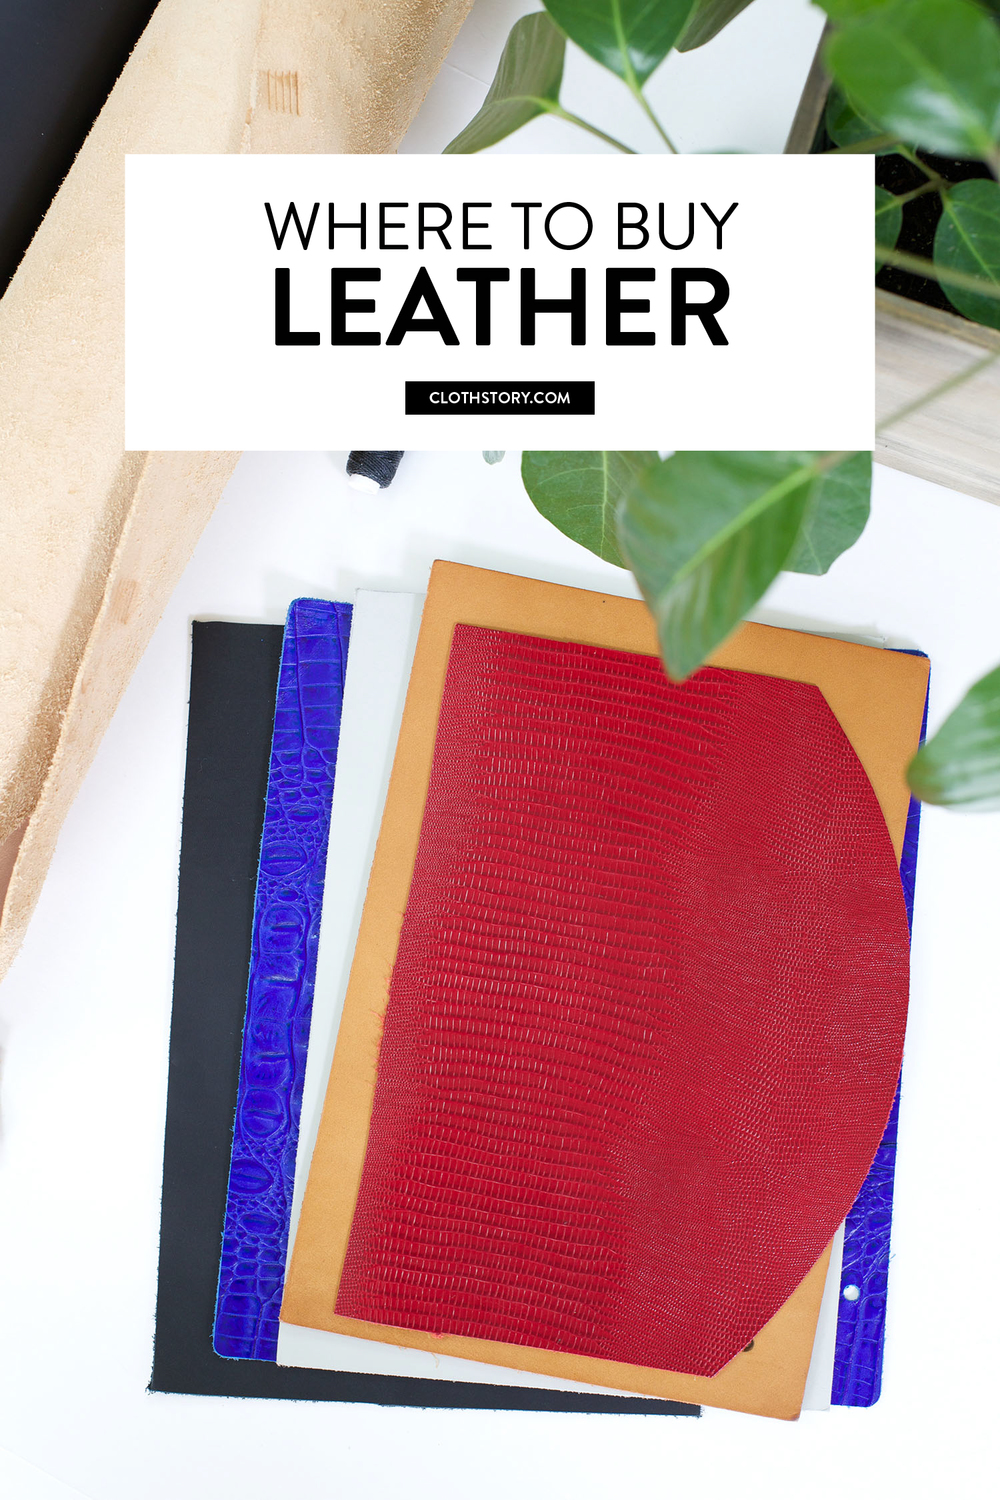 Leatherworking series: How to choose and where to buy leather for your project plus free printable leather weight/thickness conversion chart. -www.clothstory.com